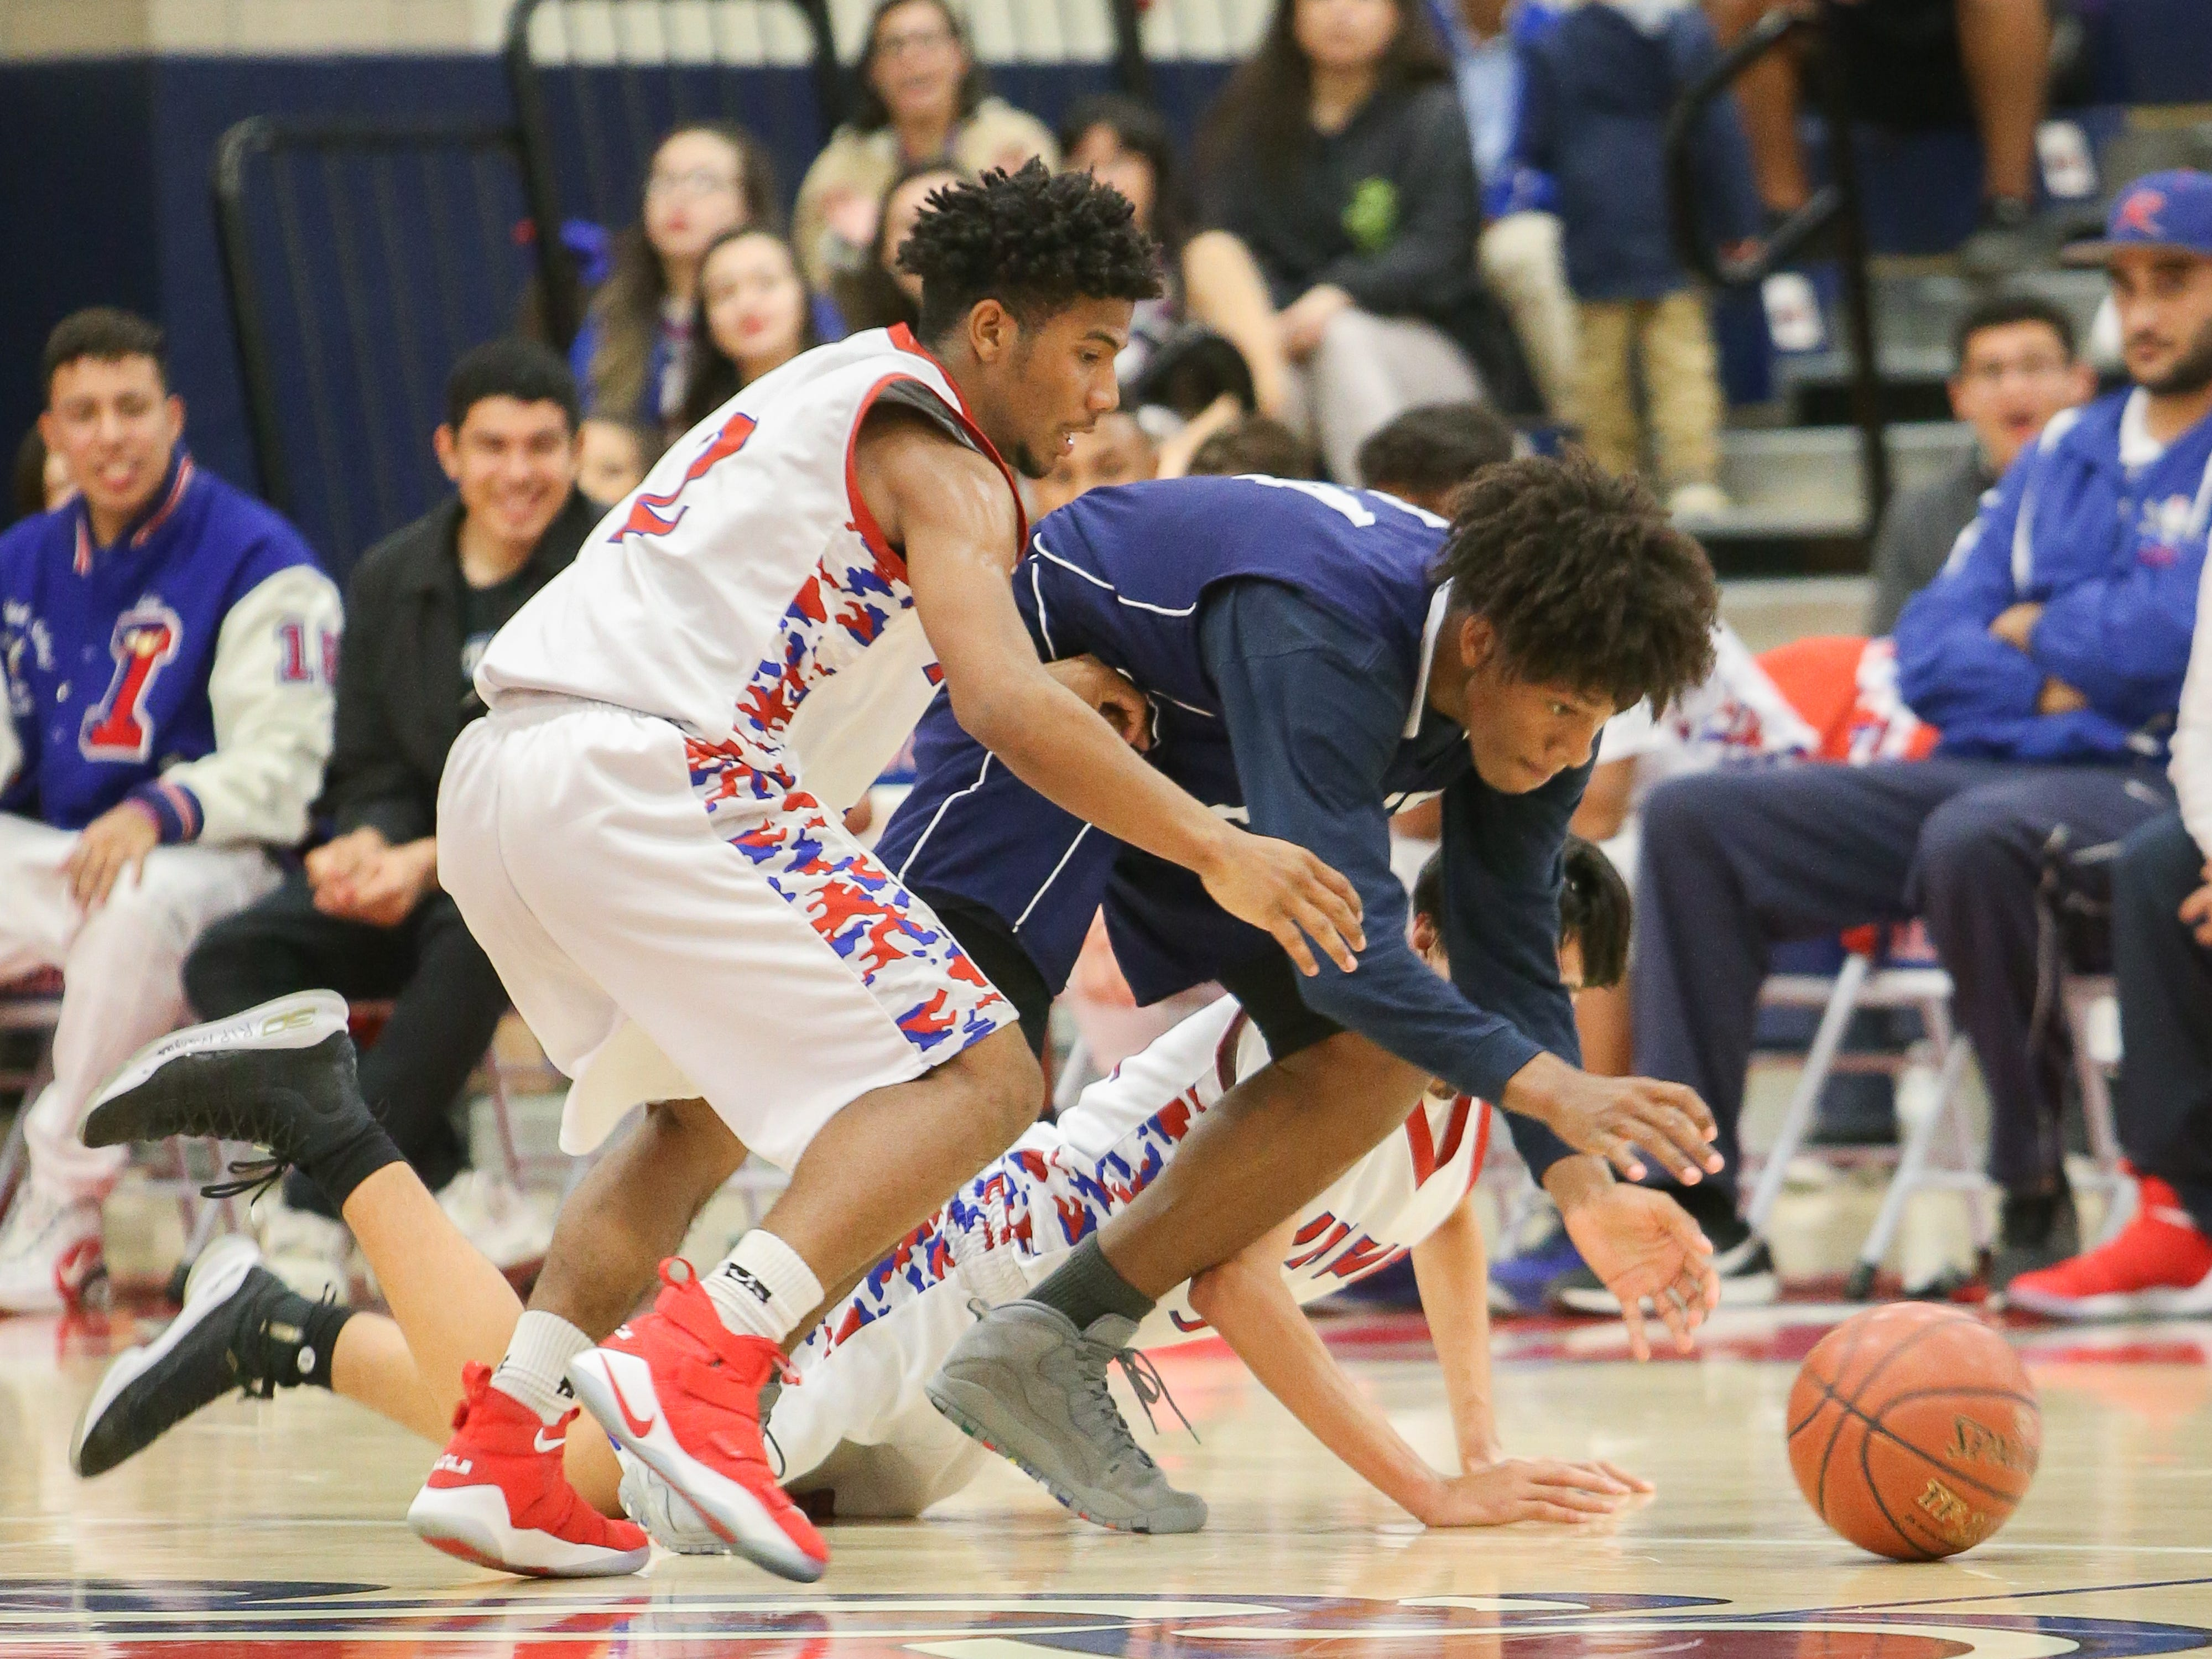 Players from both teams scrambles for the ball. The Indio varsity basketball team won Tuesday's home conference game against Desert Hot Springs (CA) by a score of 64-59.